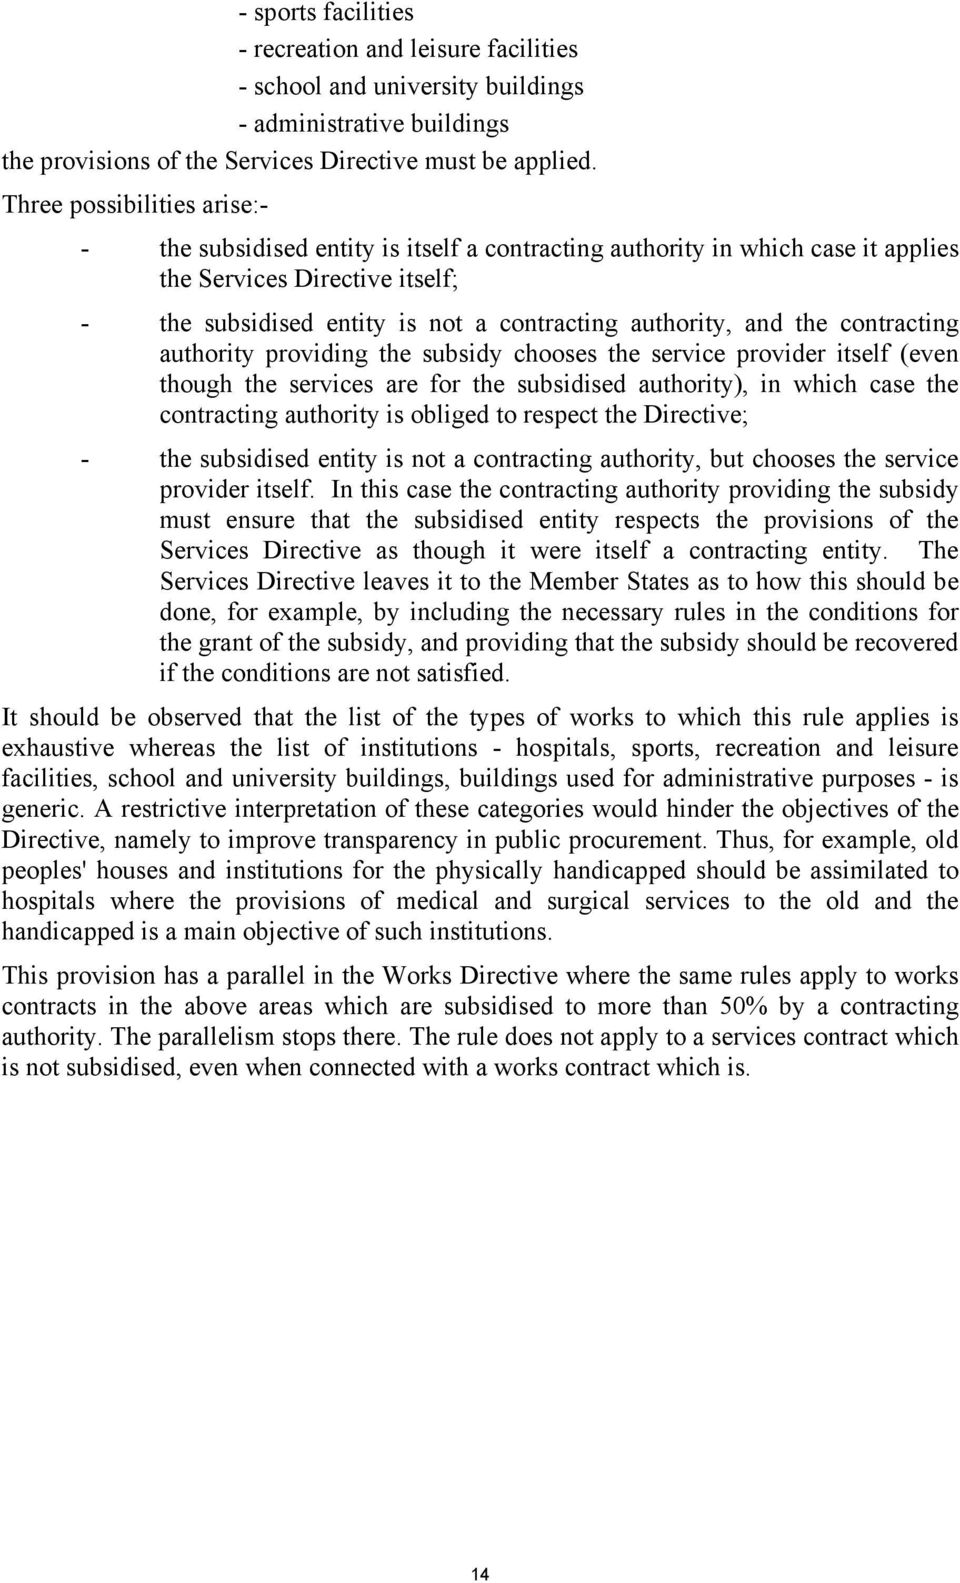 and the contracting authority providing the subsidy chooses the service provider itself (even though the services are for the subsidised authority), in which case the contracting authority is obliged